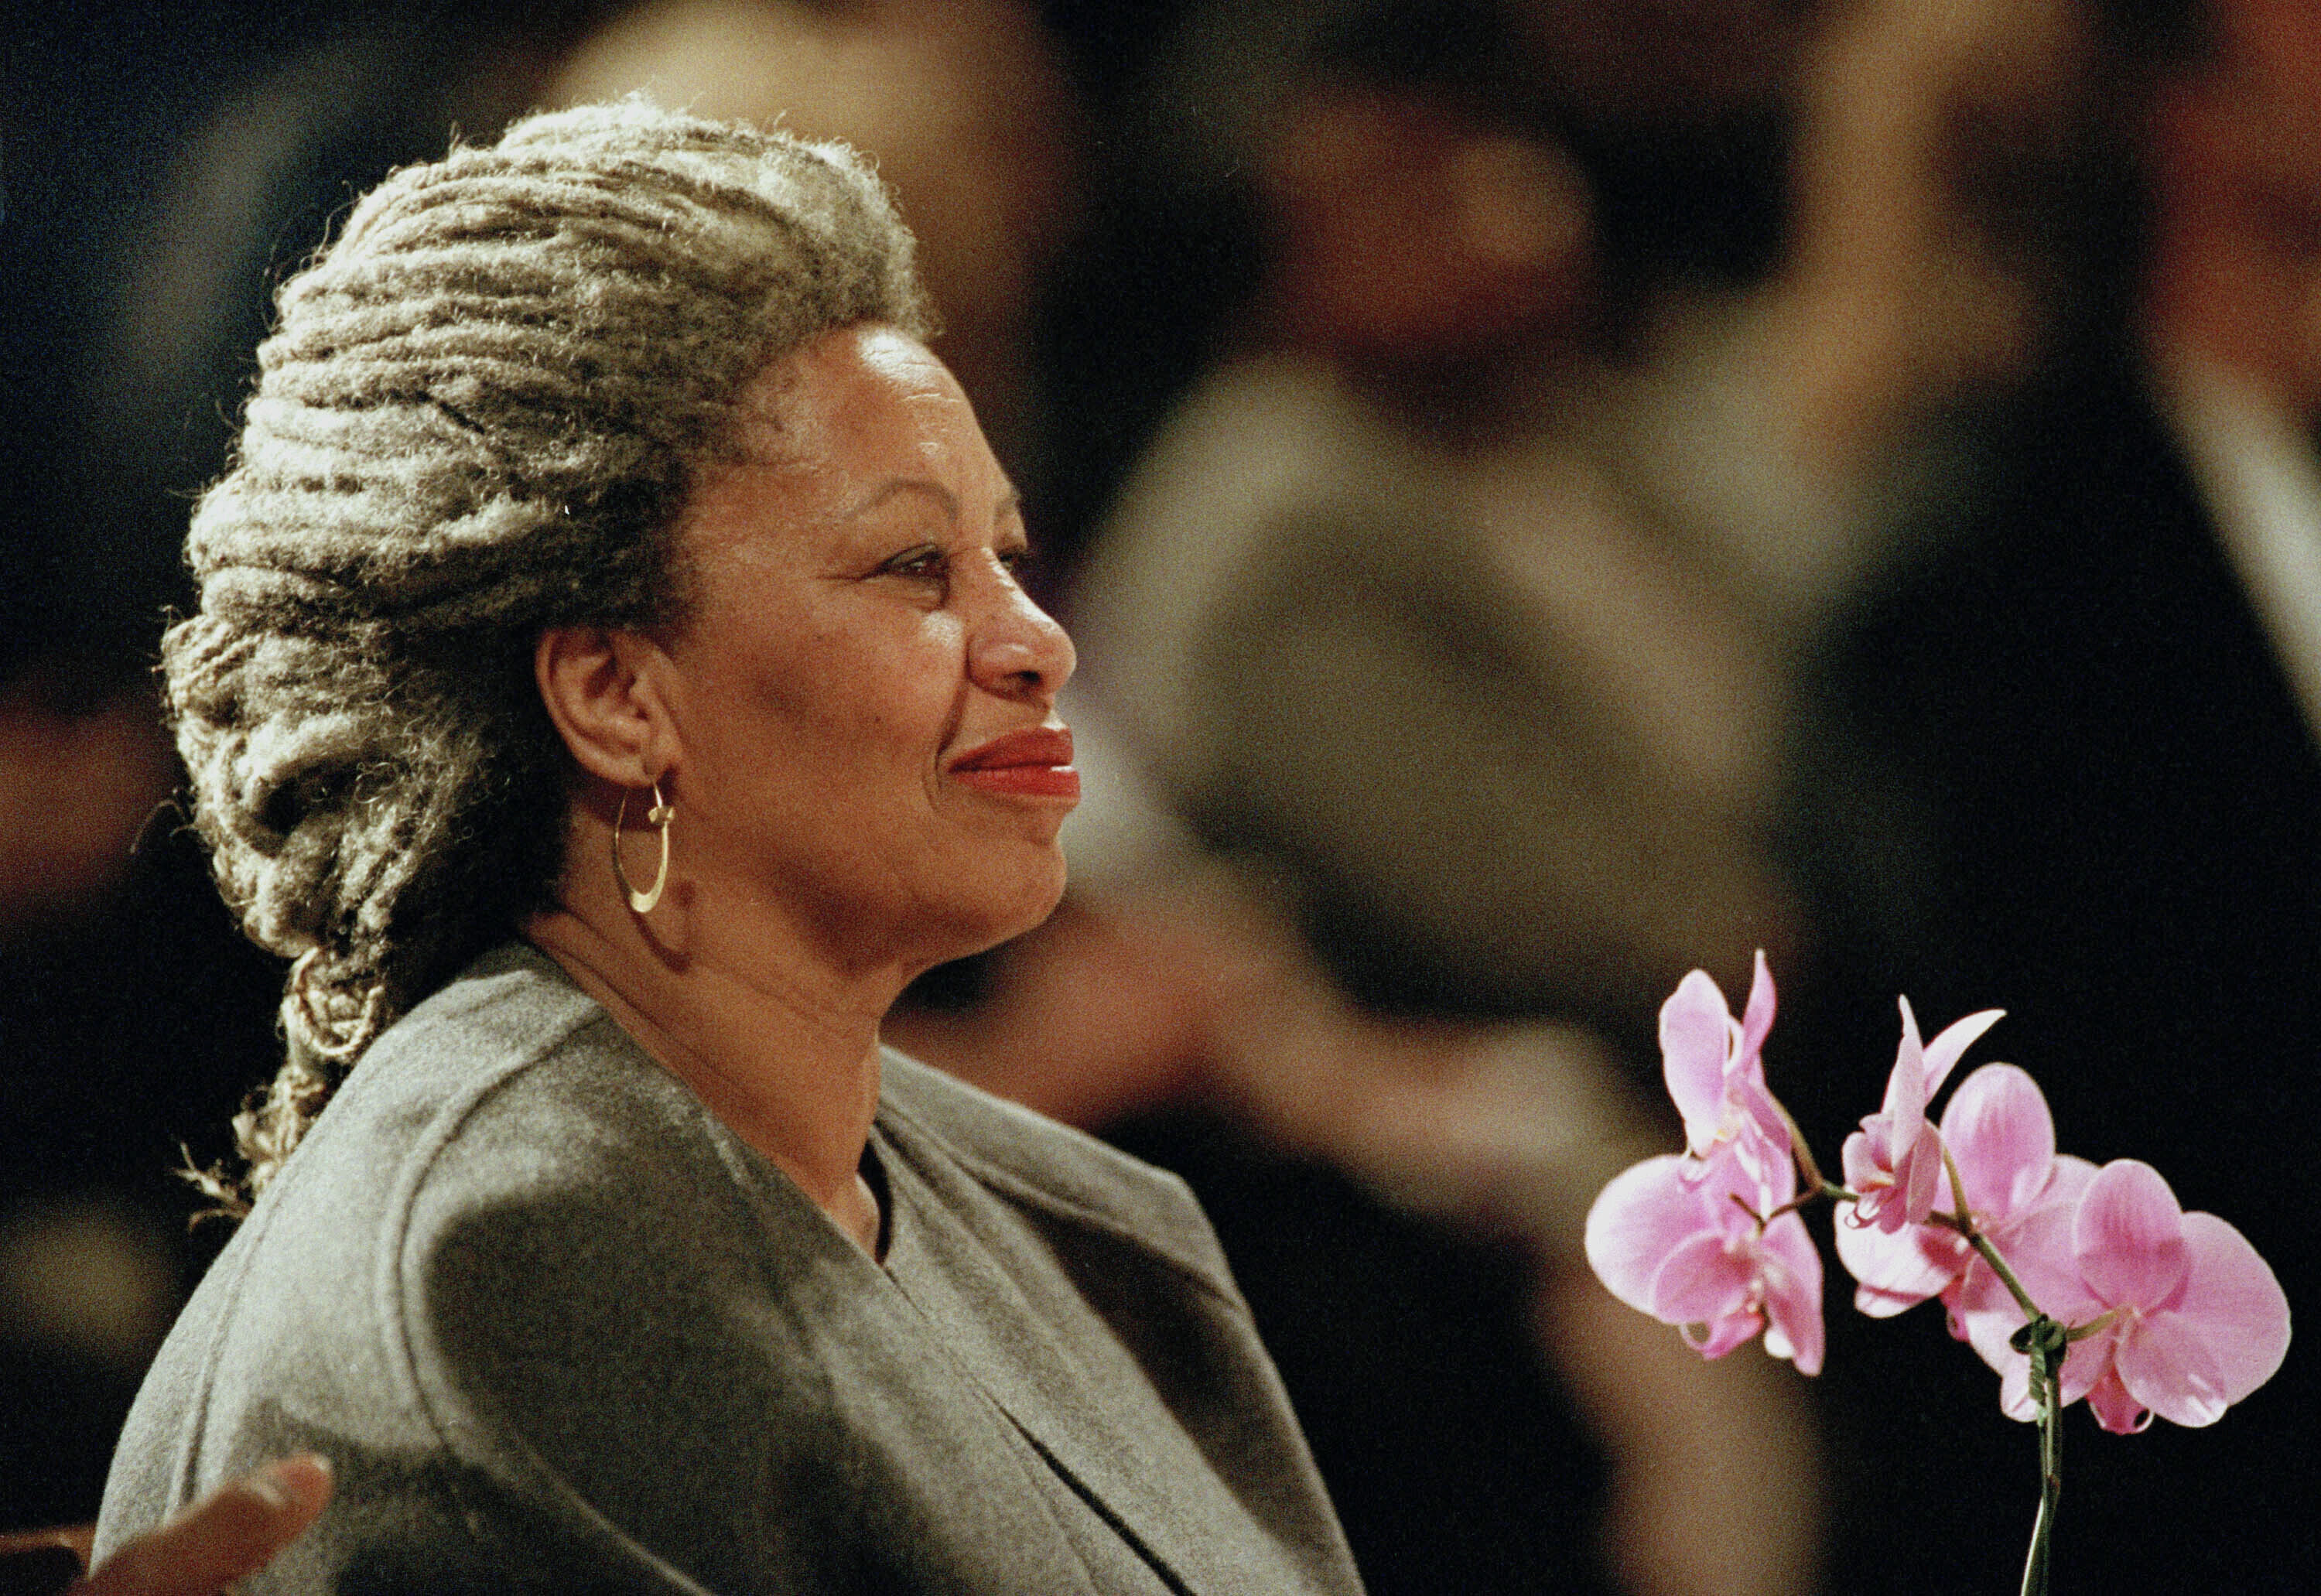 Toni Morrison is shown in 1994 at the Cathedral of St. John the Divine in New York.